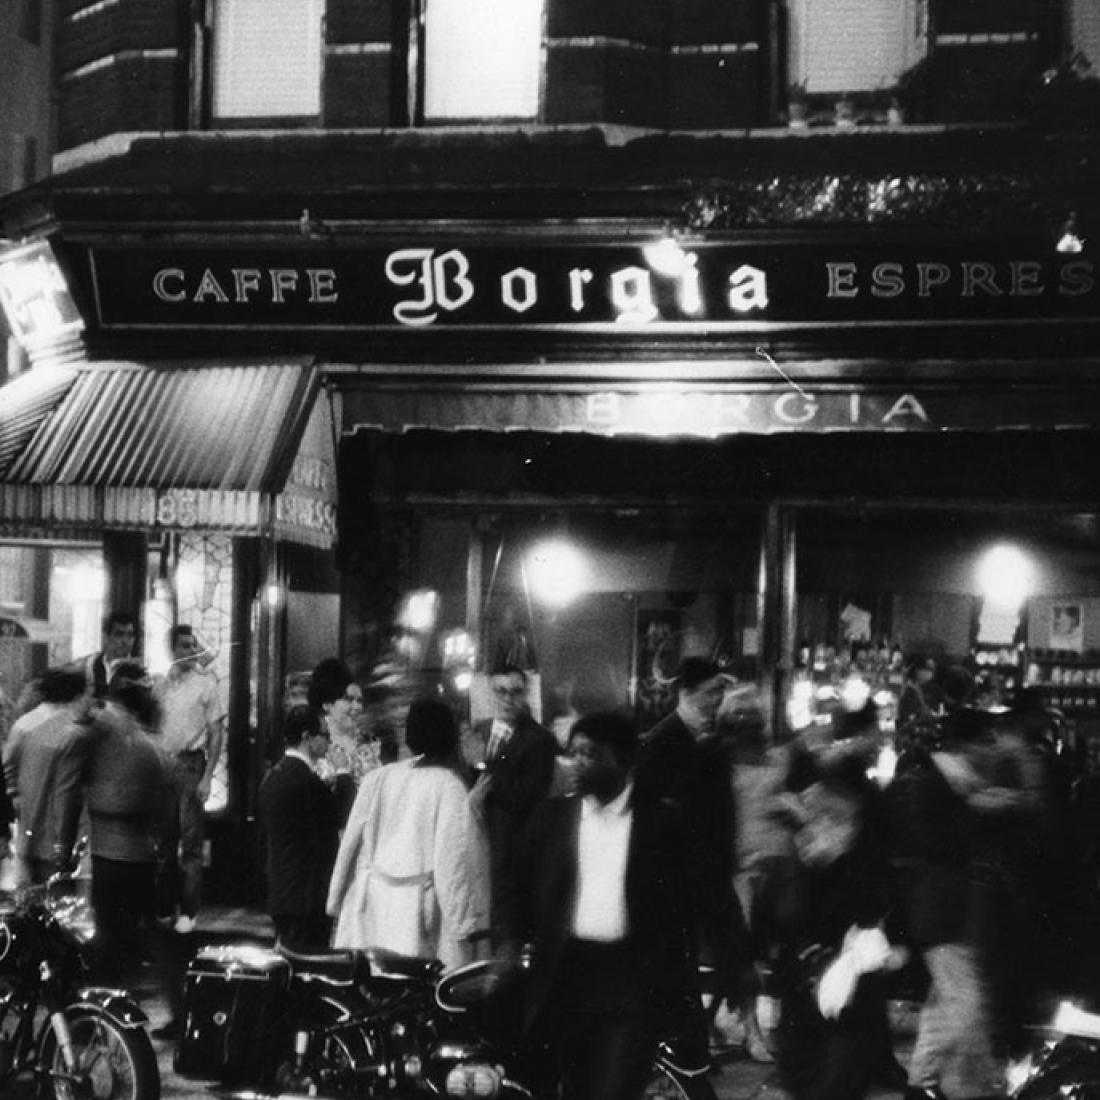 Photograph by Fred W. McDarrah of a motion-filled crowd outside the Caffe Borgia in Greenwich Village